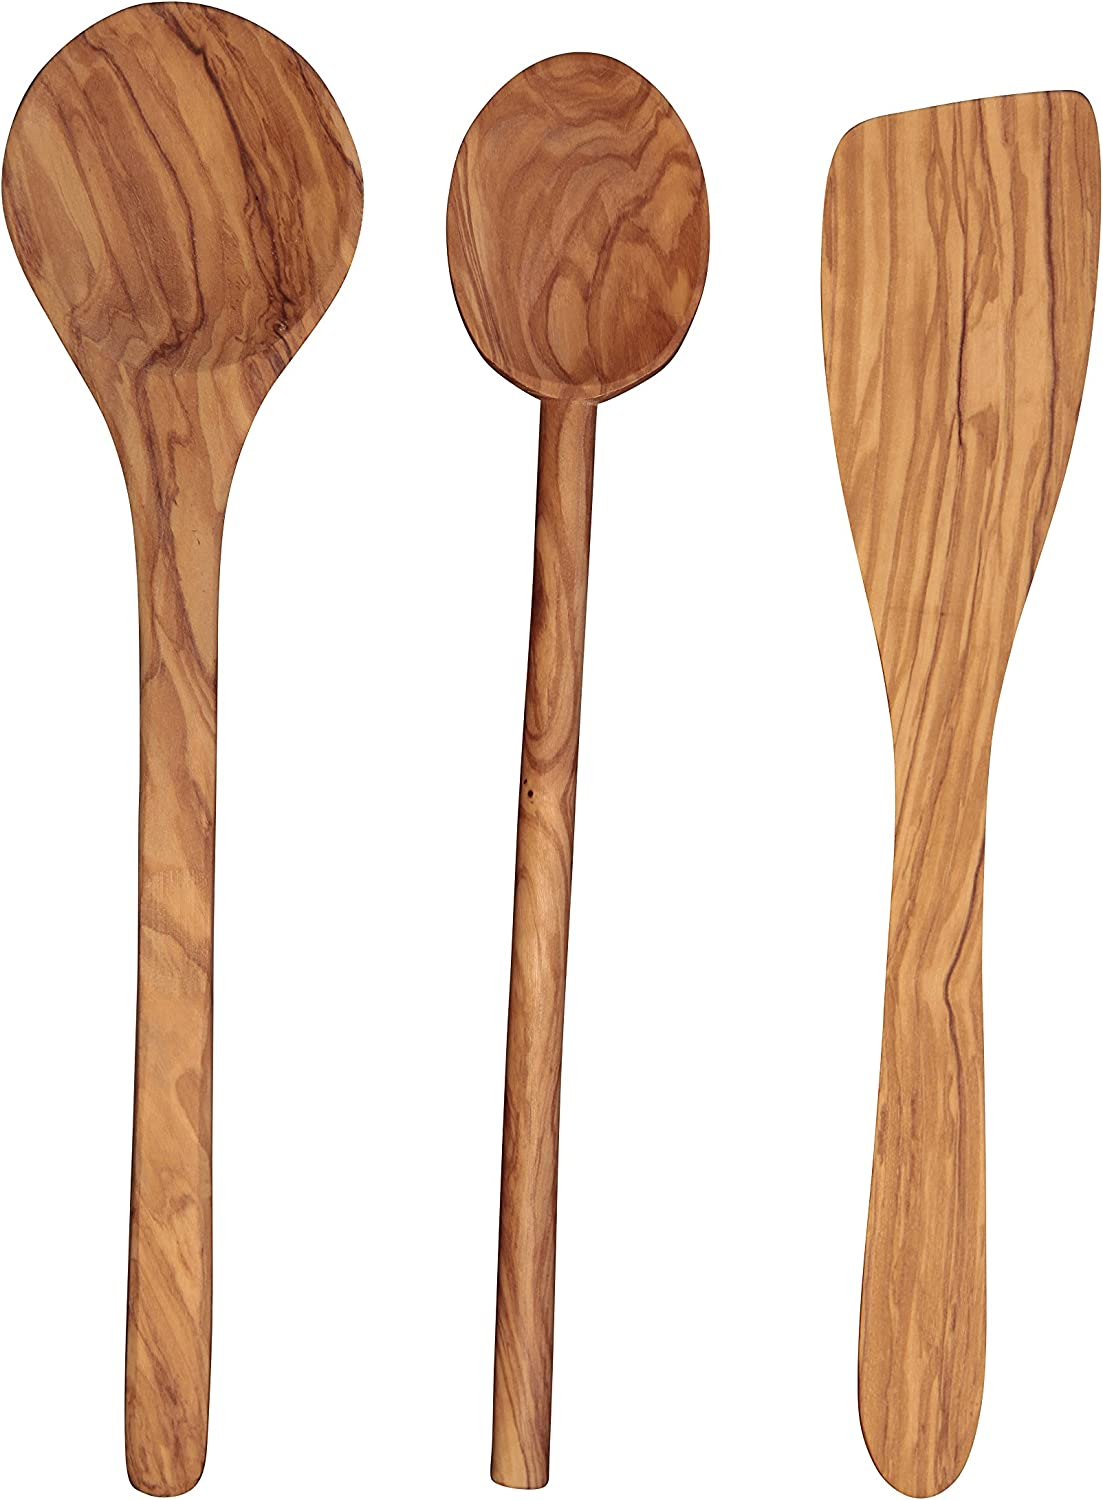 Cooking Spoon 10 inch by Scanwood Scanwood Olive Wood Spoon